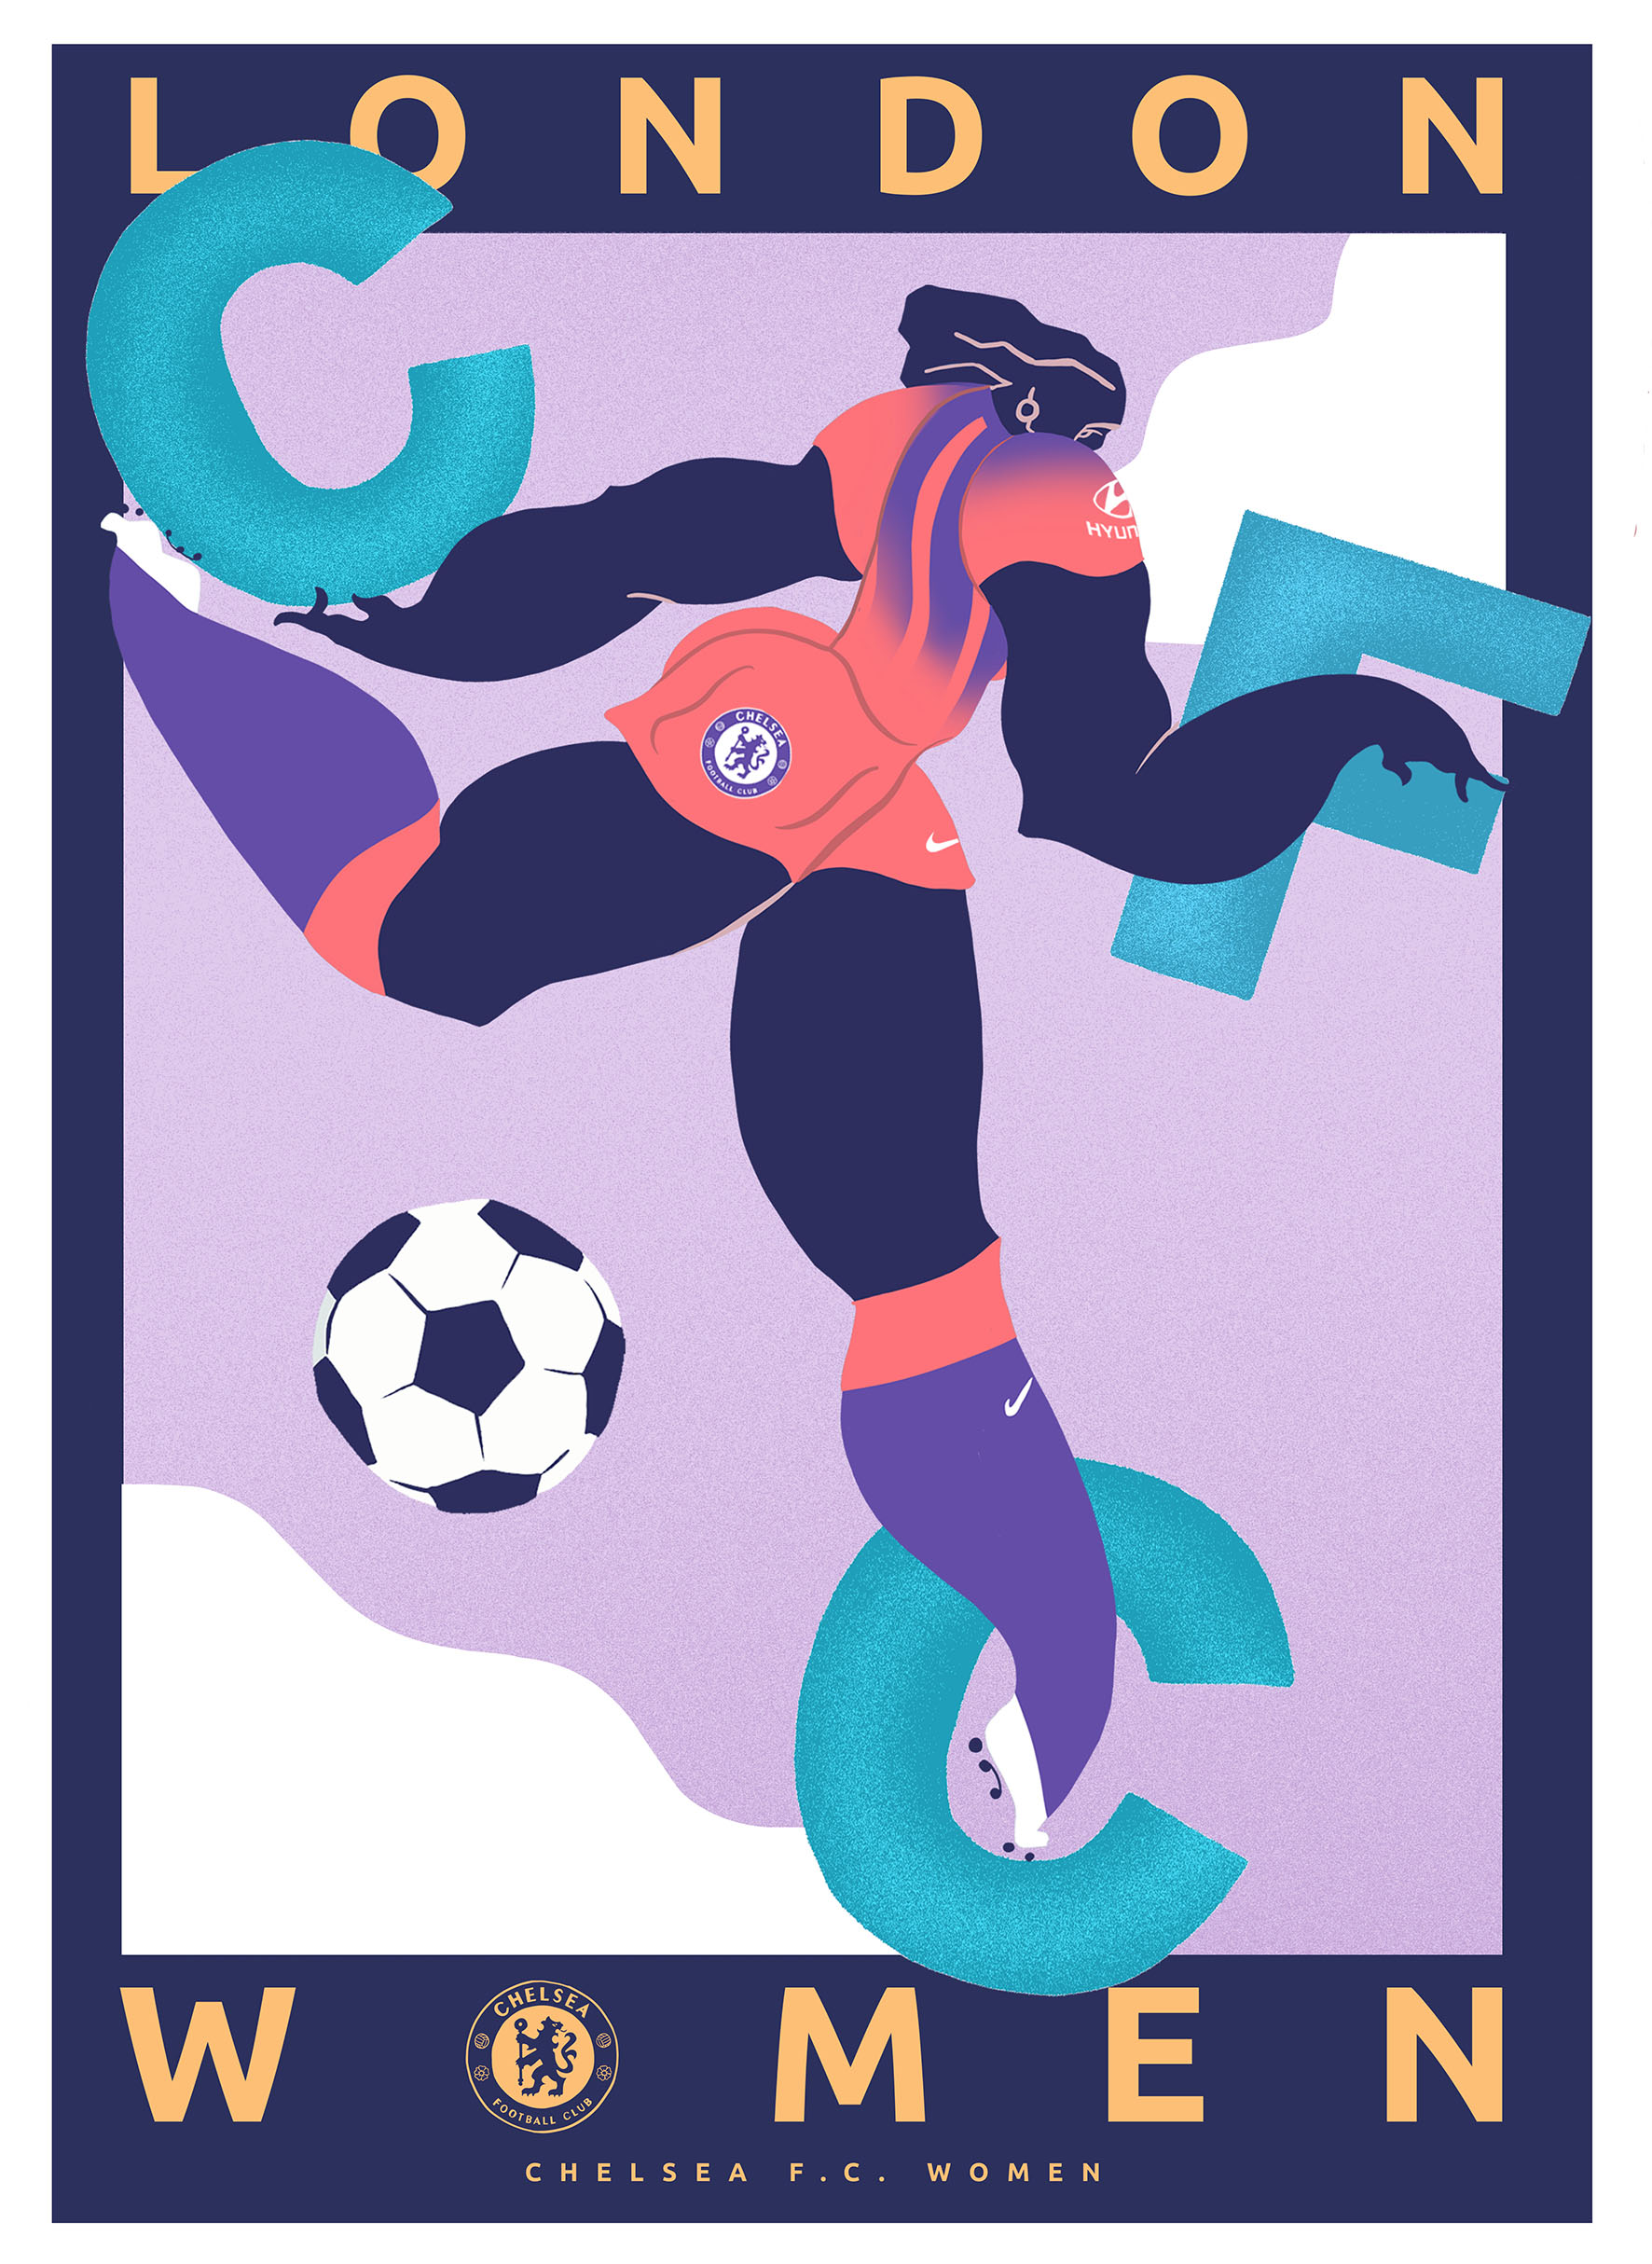 It's a match – women's soccer and art